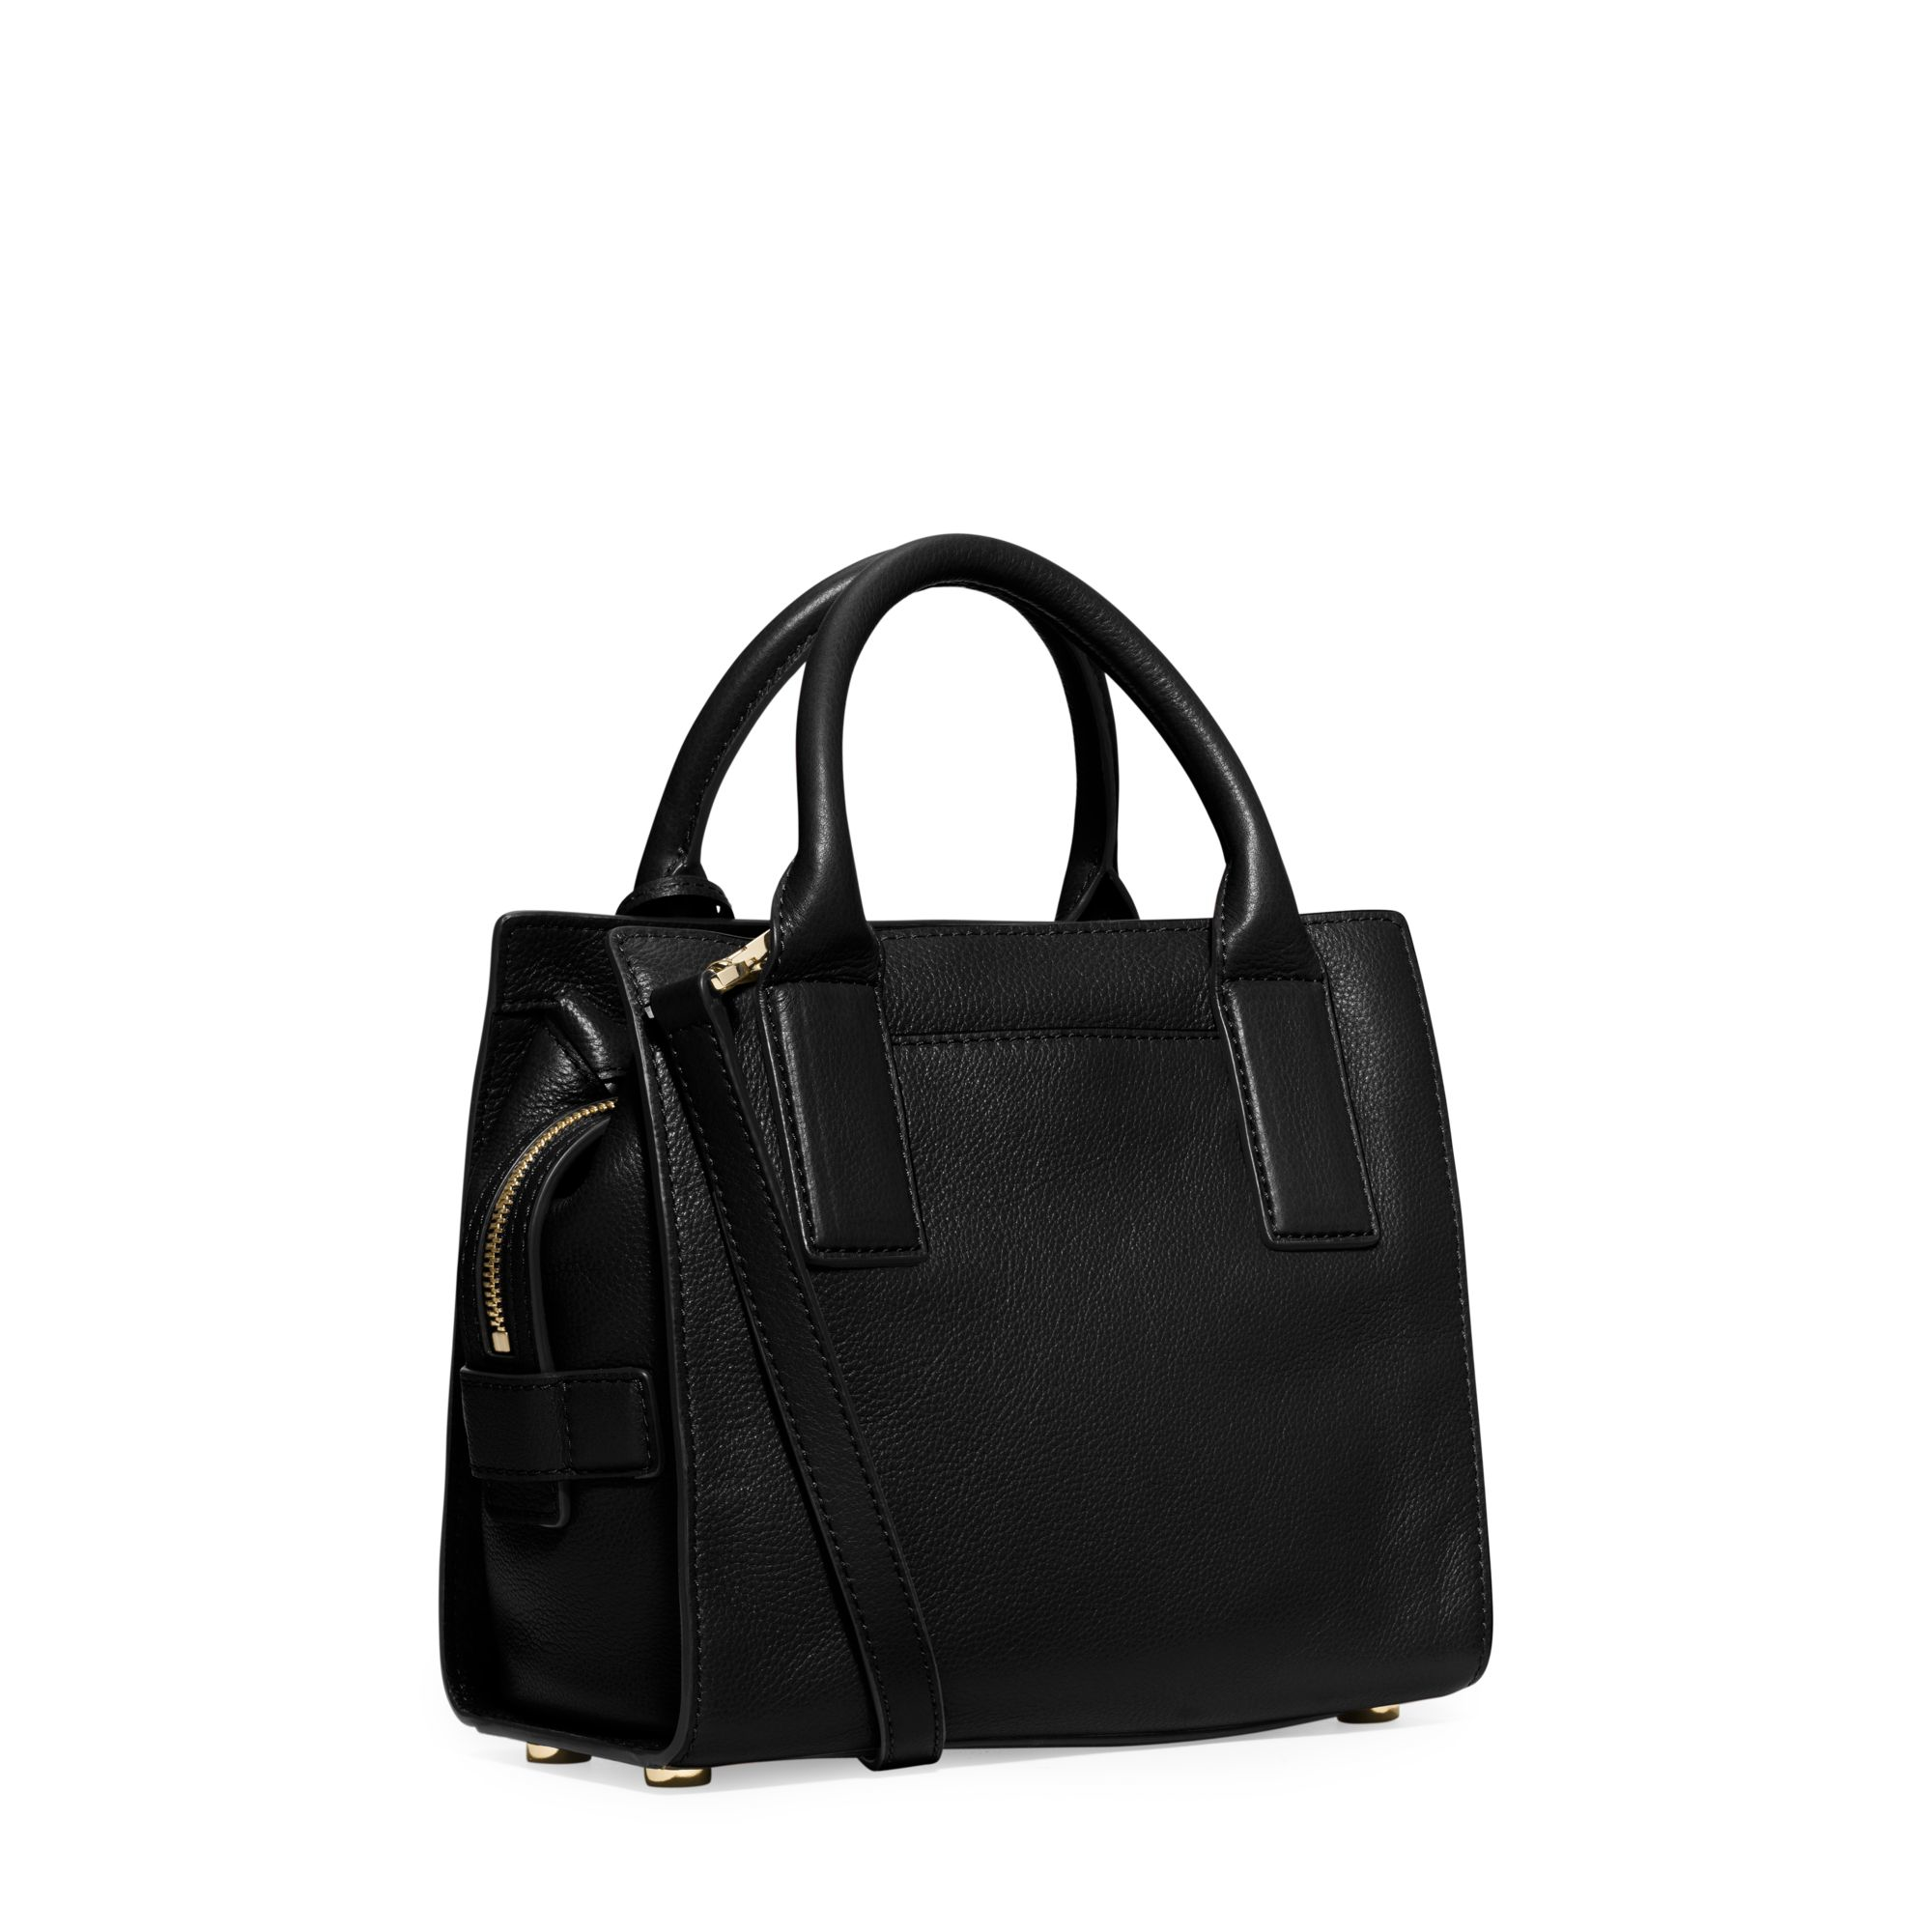 645fdcd59a9e Lyst - Michael Kors Mckenna Small Leather Satchel in Black